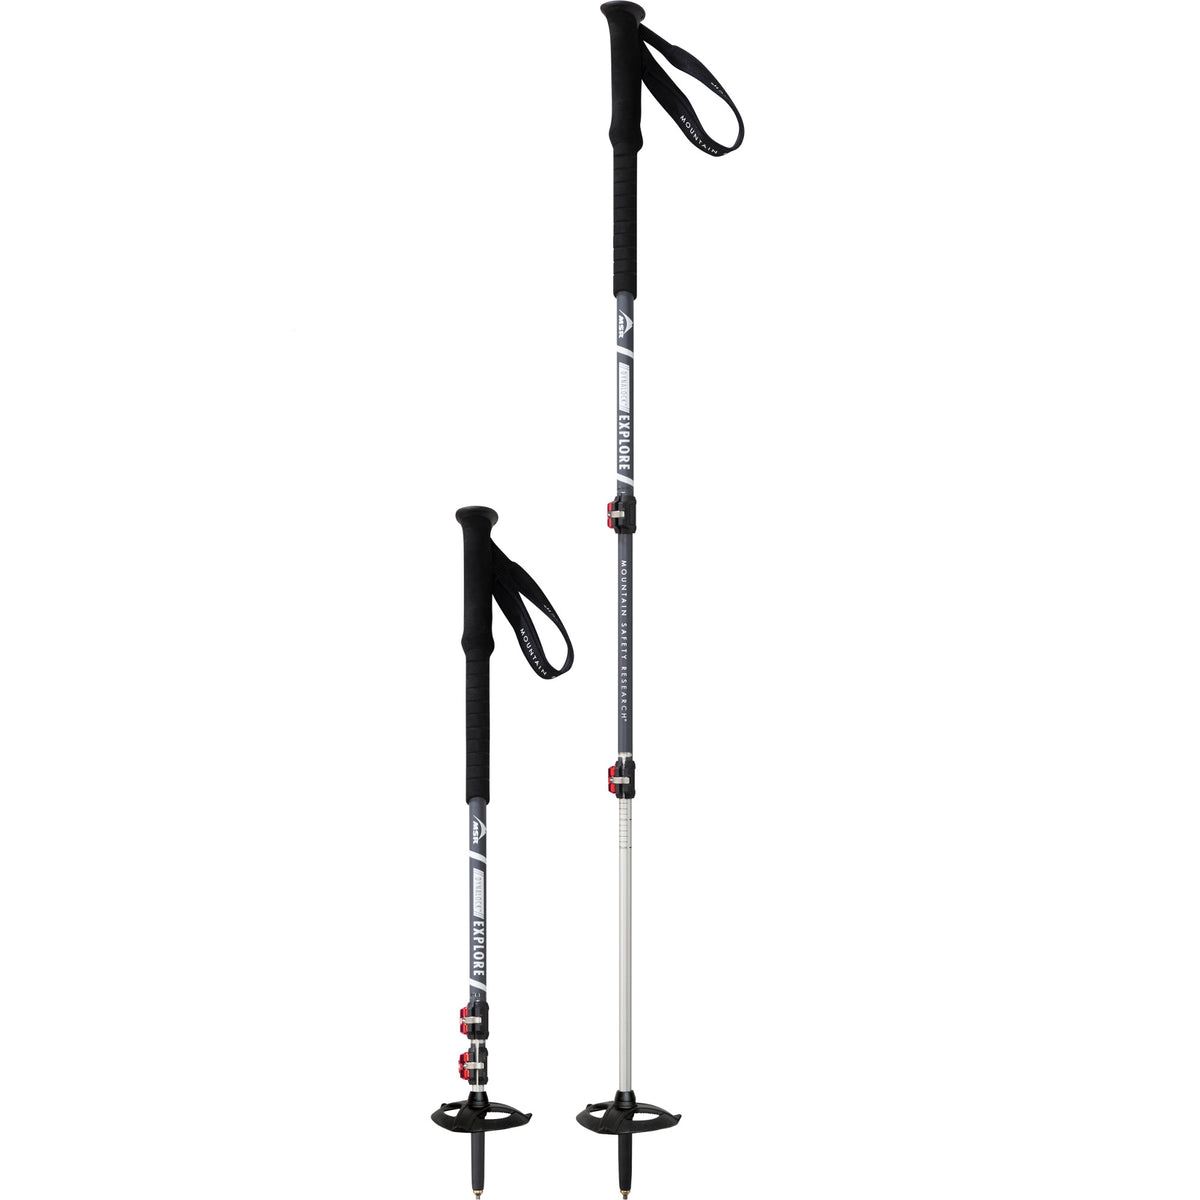 Pair of MSR Dynalock Explore trekking poles, one fully extended and one collapsed